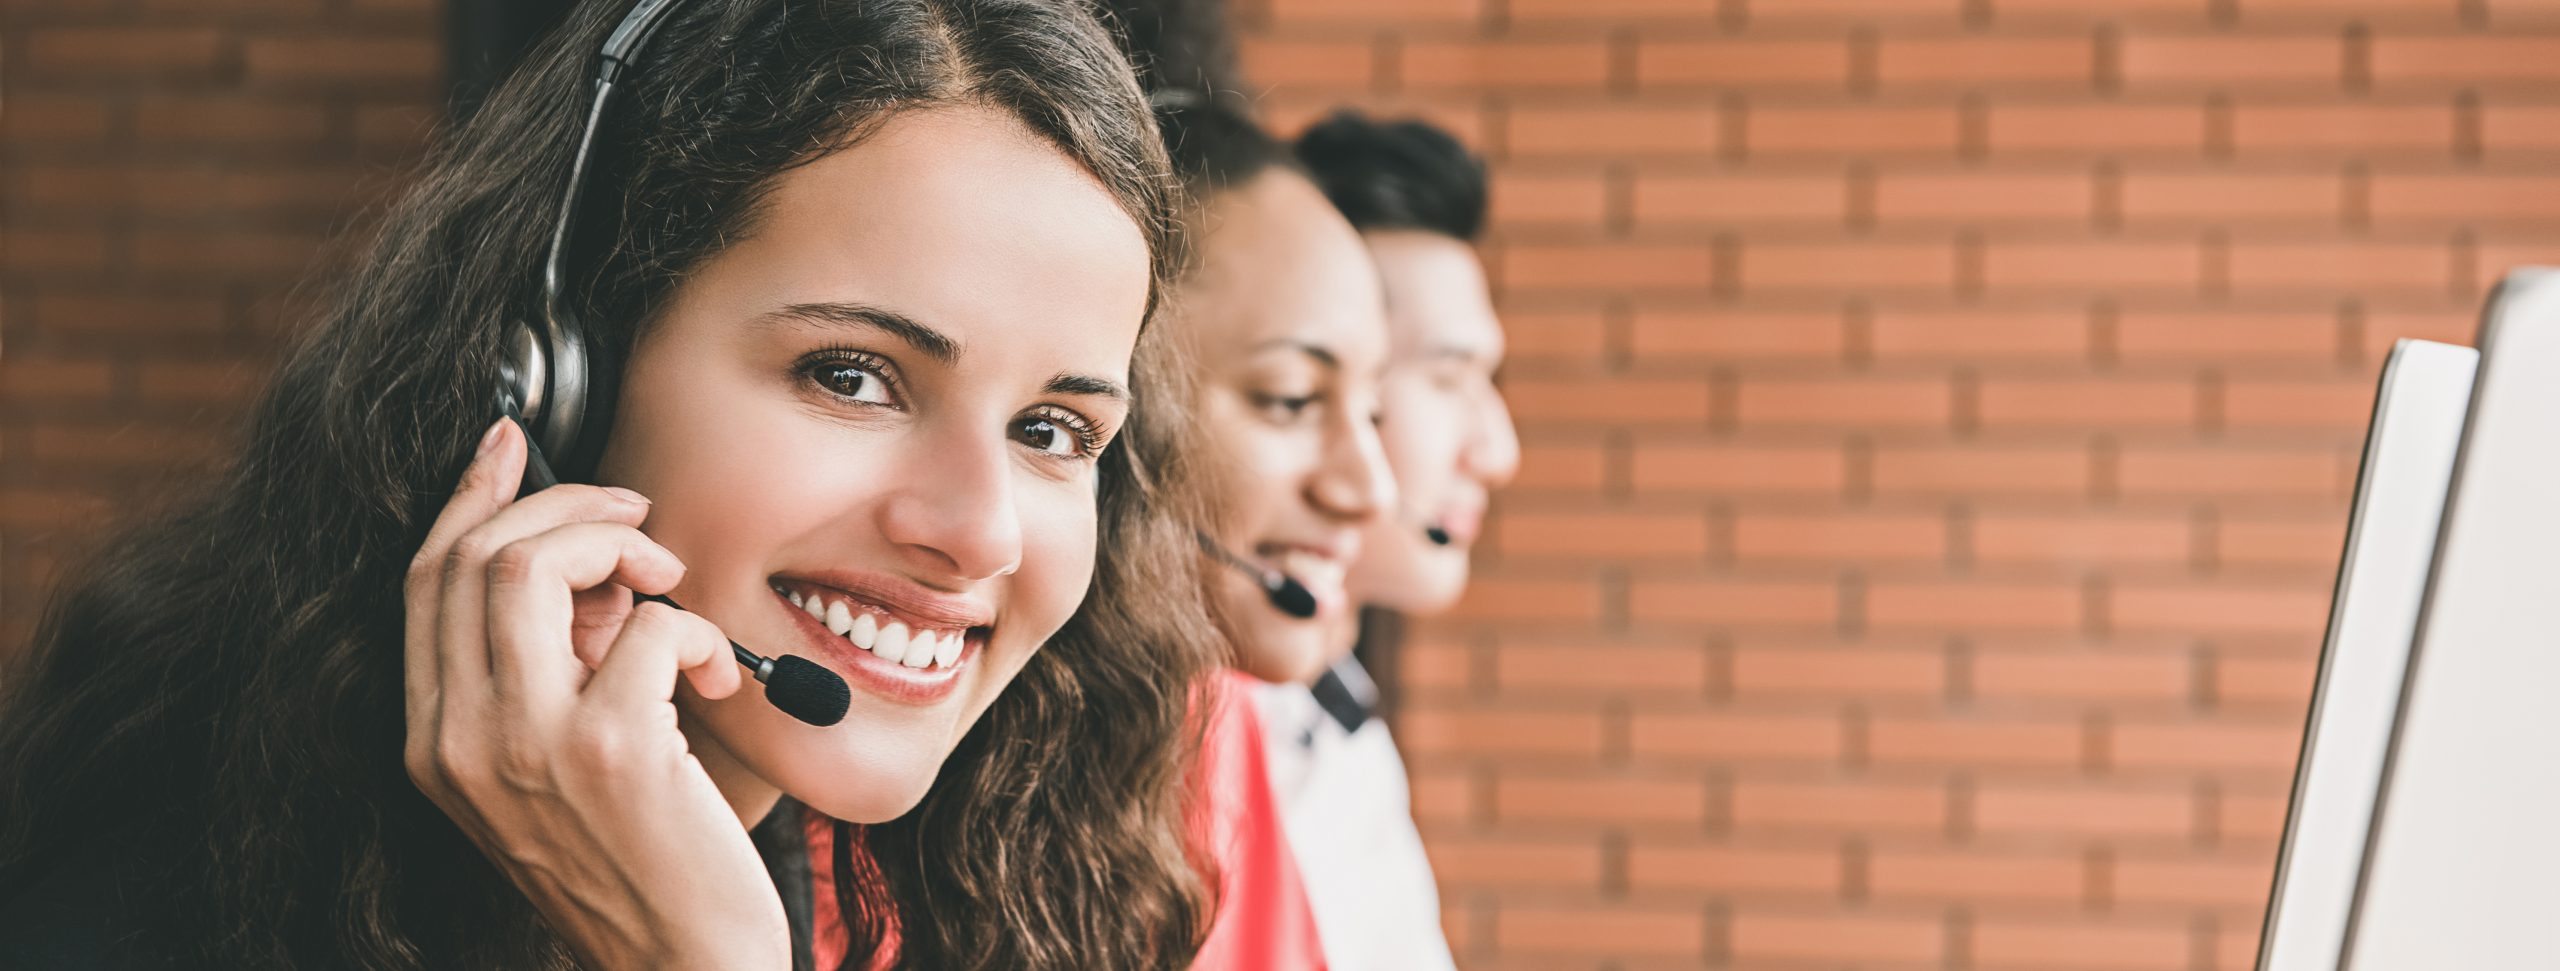 Businesswoman agent working in call center